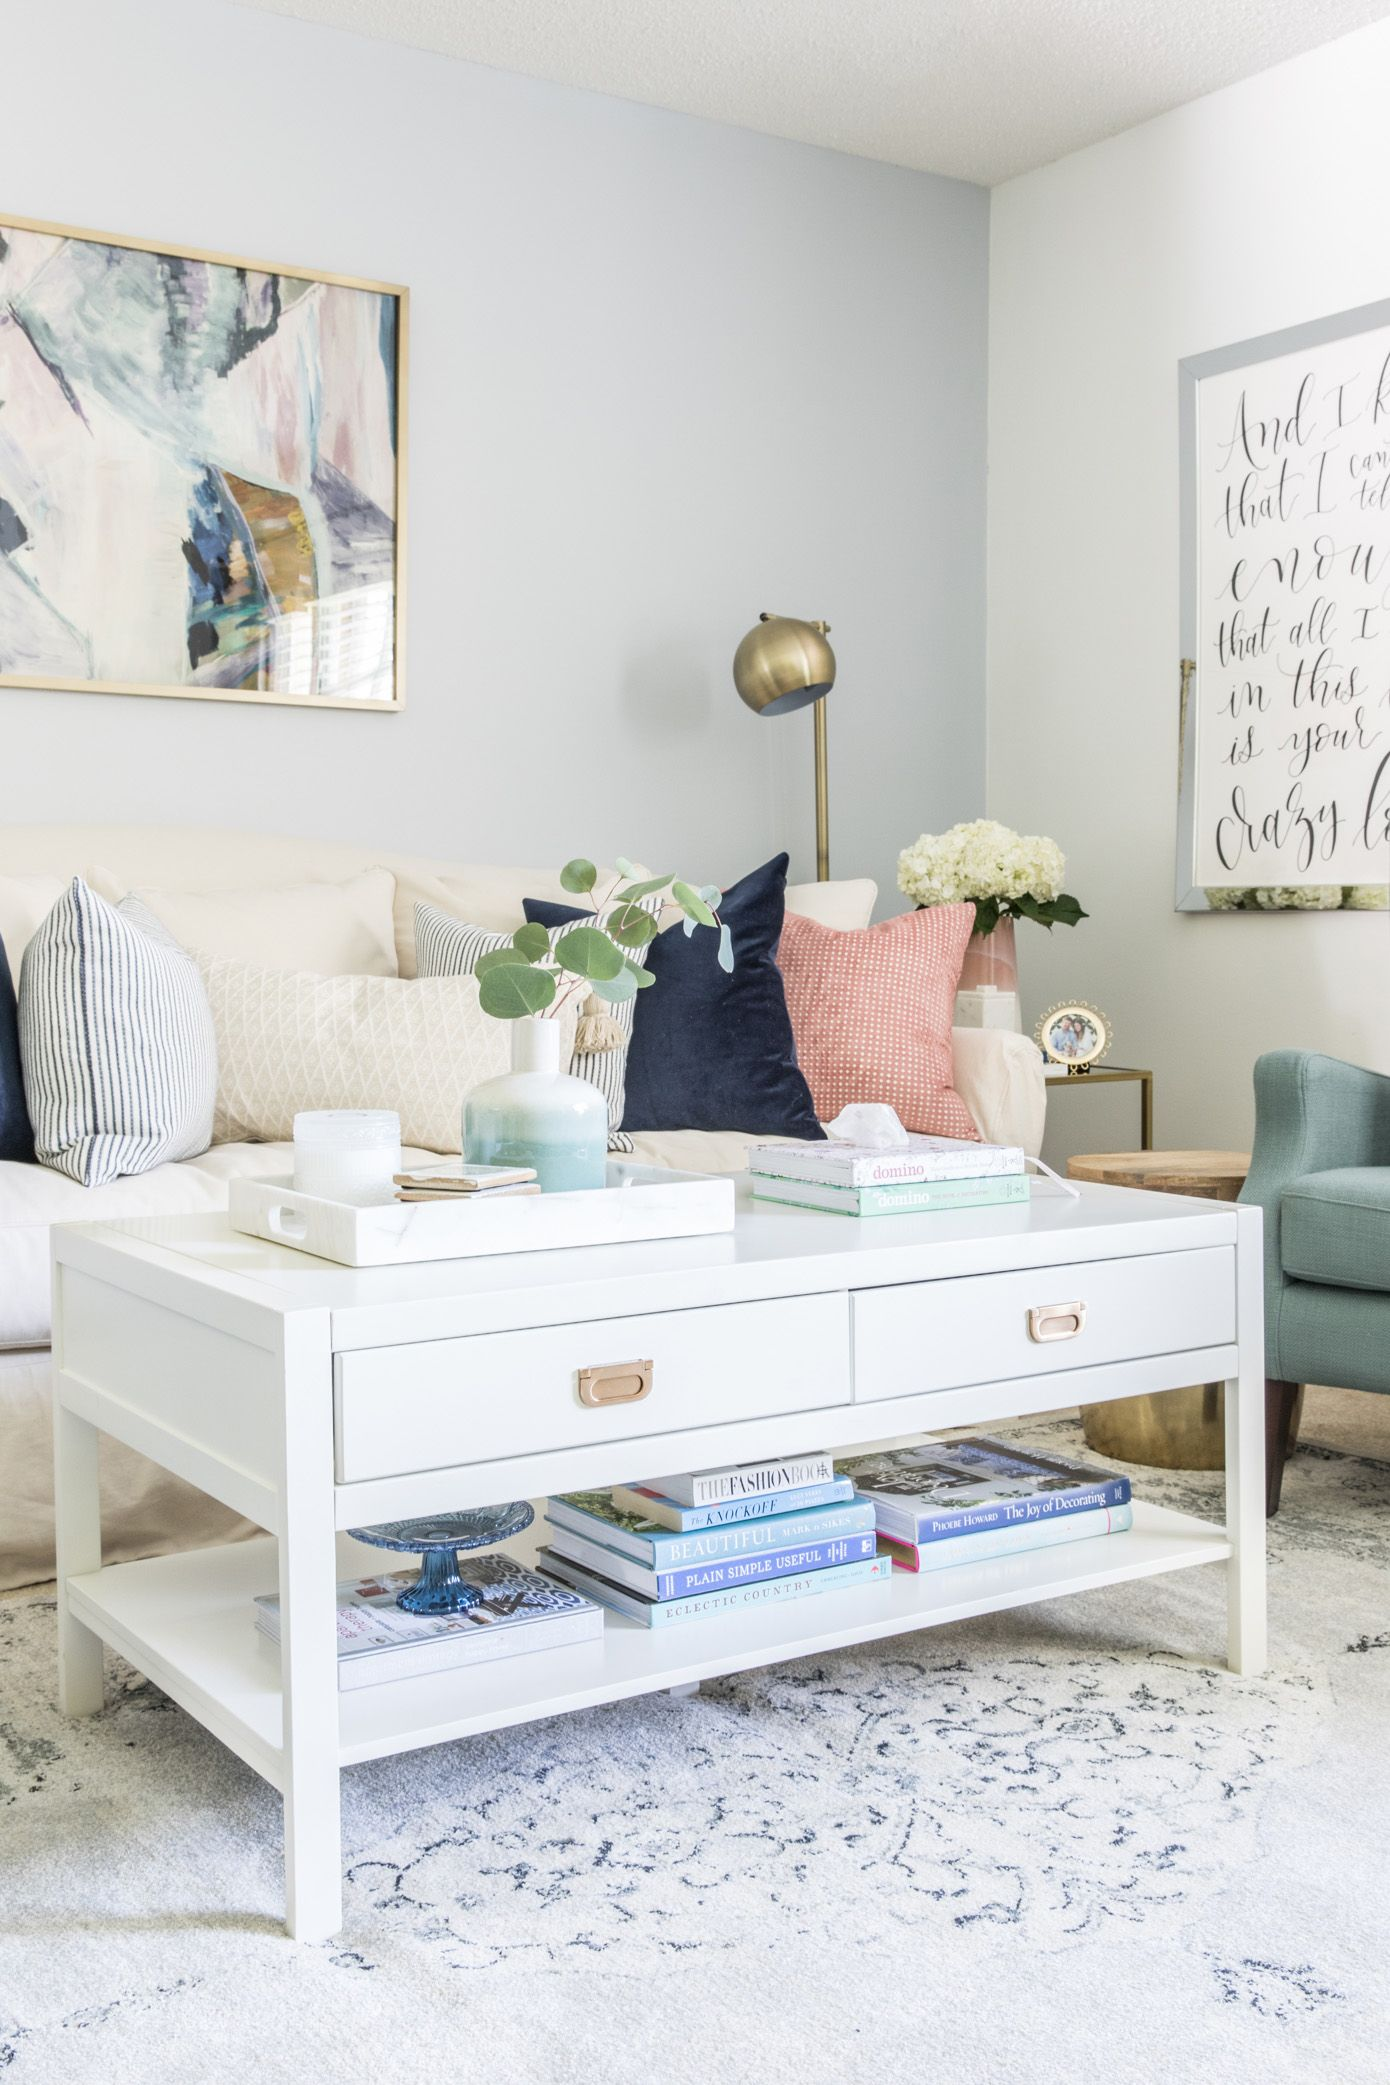 Home: Designing The Living Room